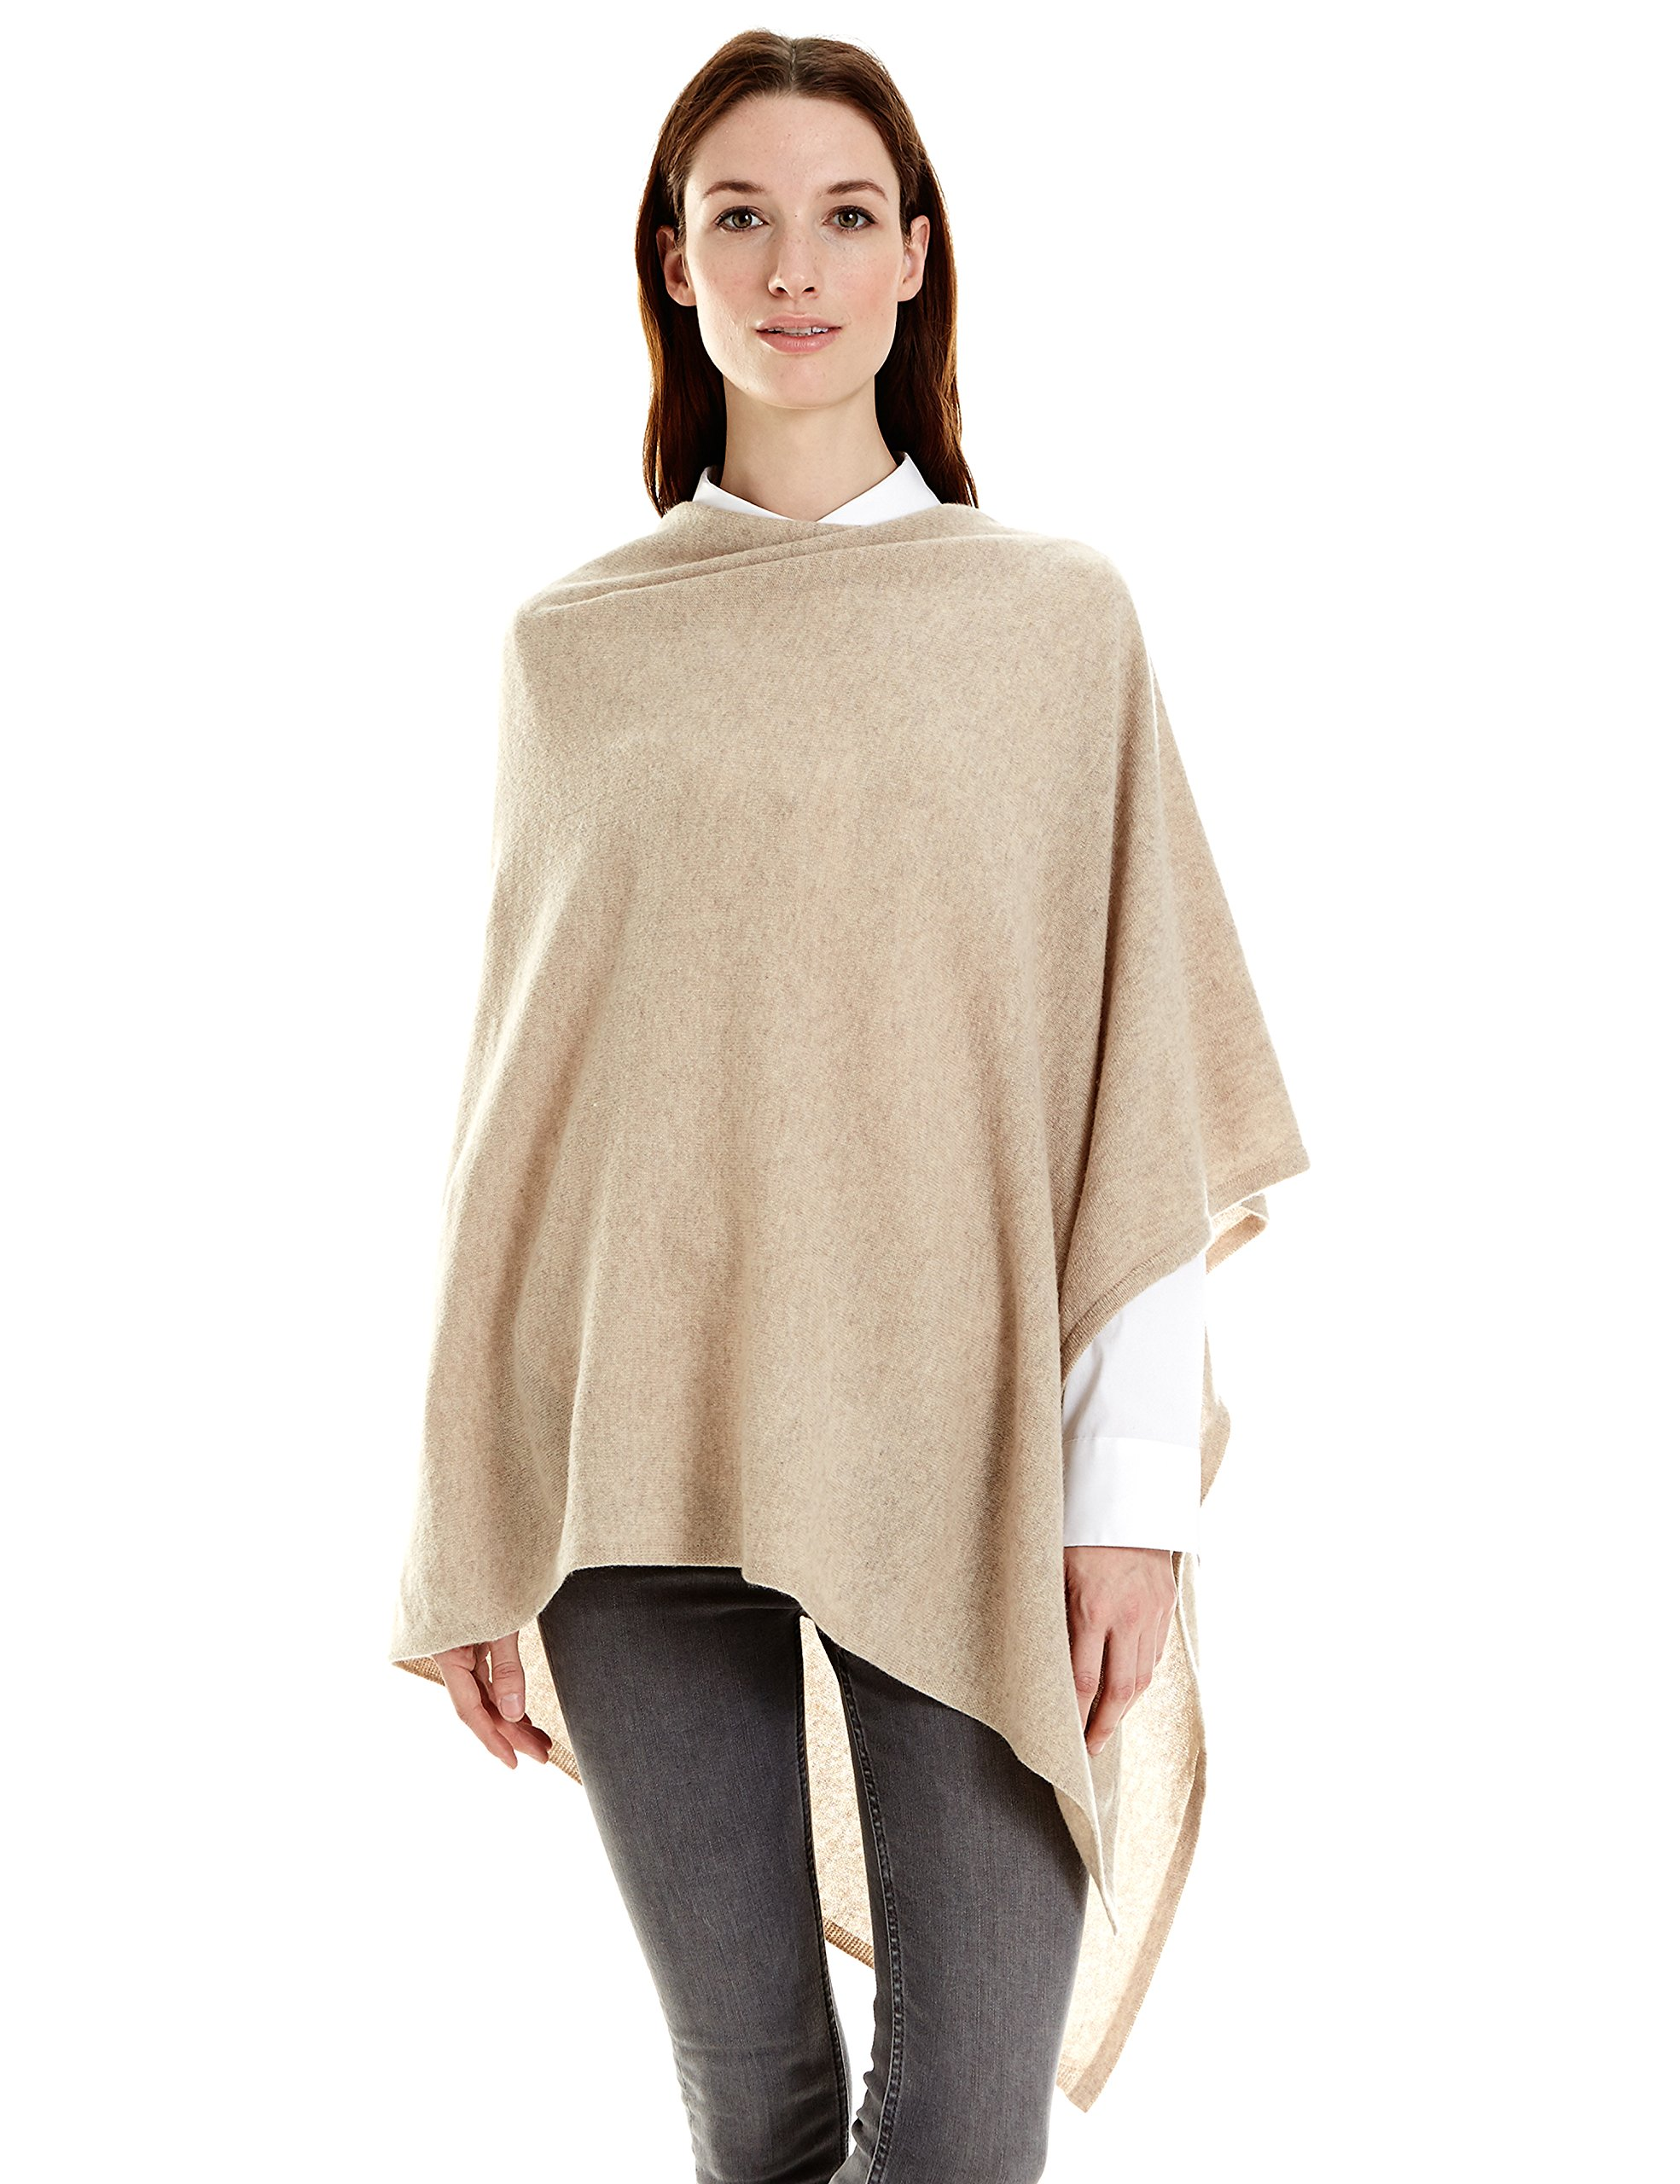 New York Cashmere 100% Pure Cashmere Draped Poncho (Oatmeal)